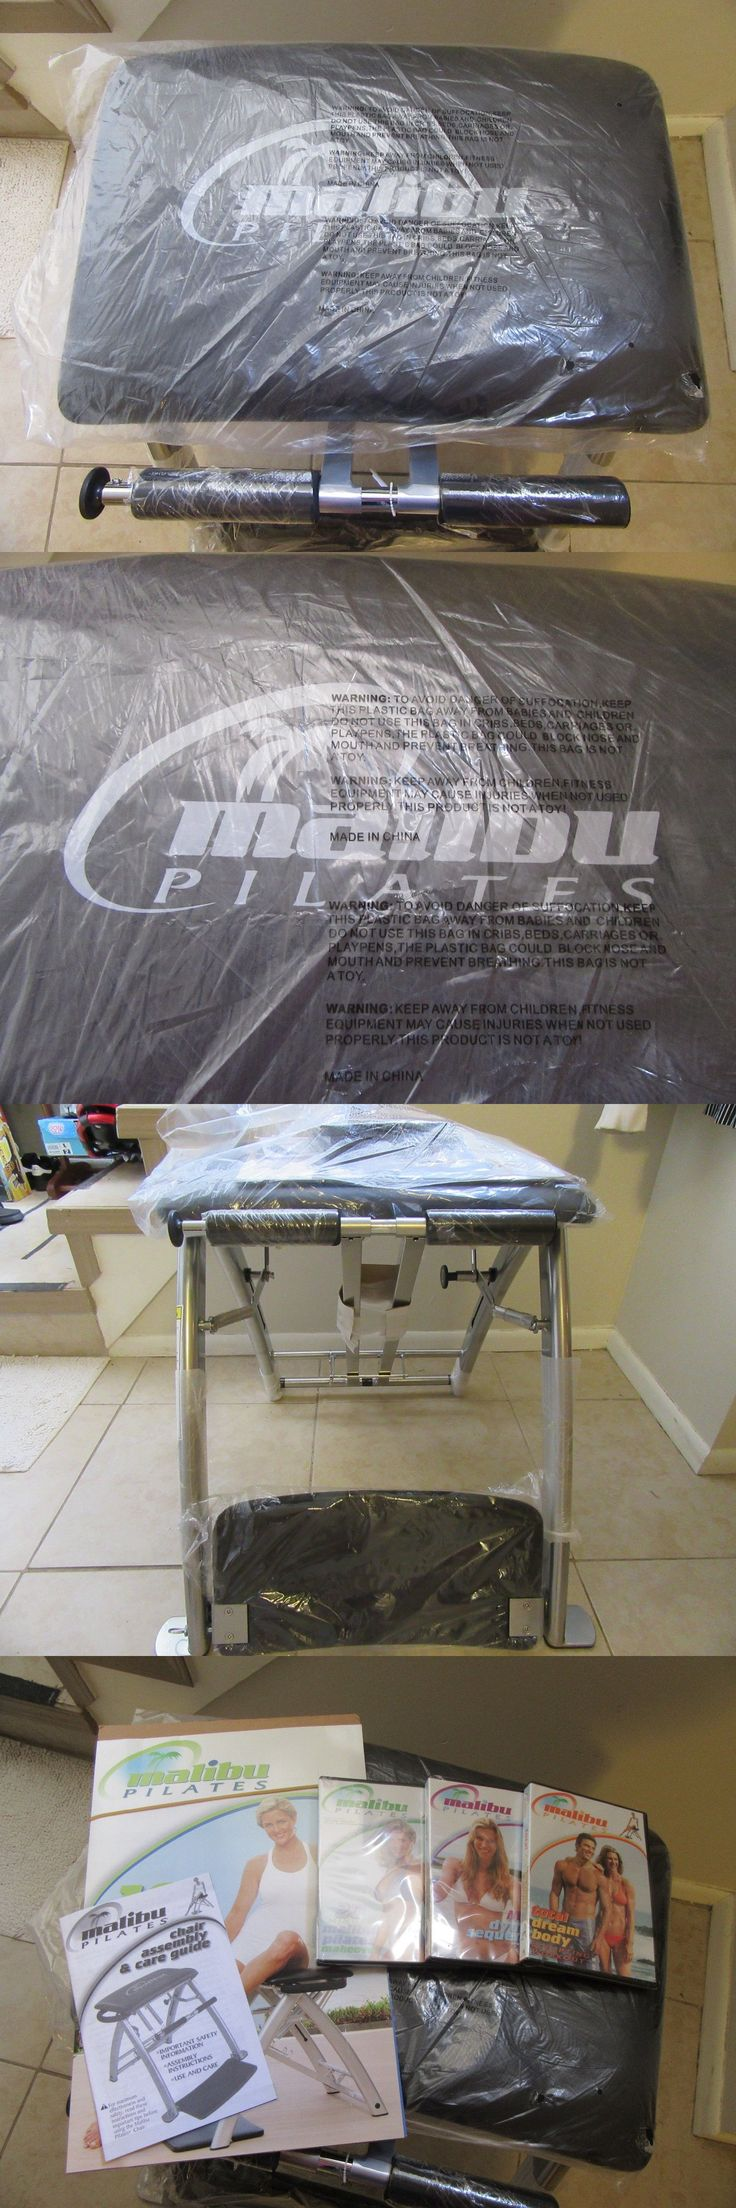 Pilates tables 179807 new malibu pilates exercise chair workout yoga fitness dvd s and